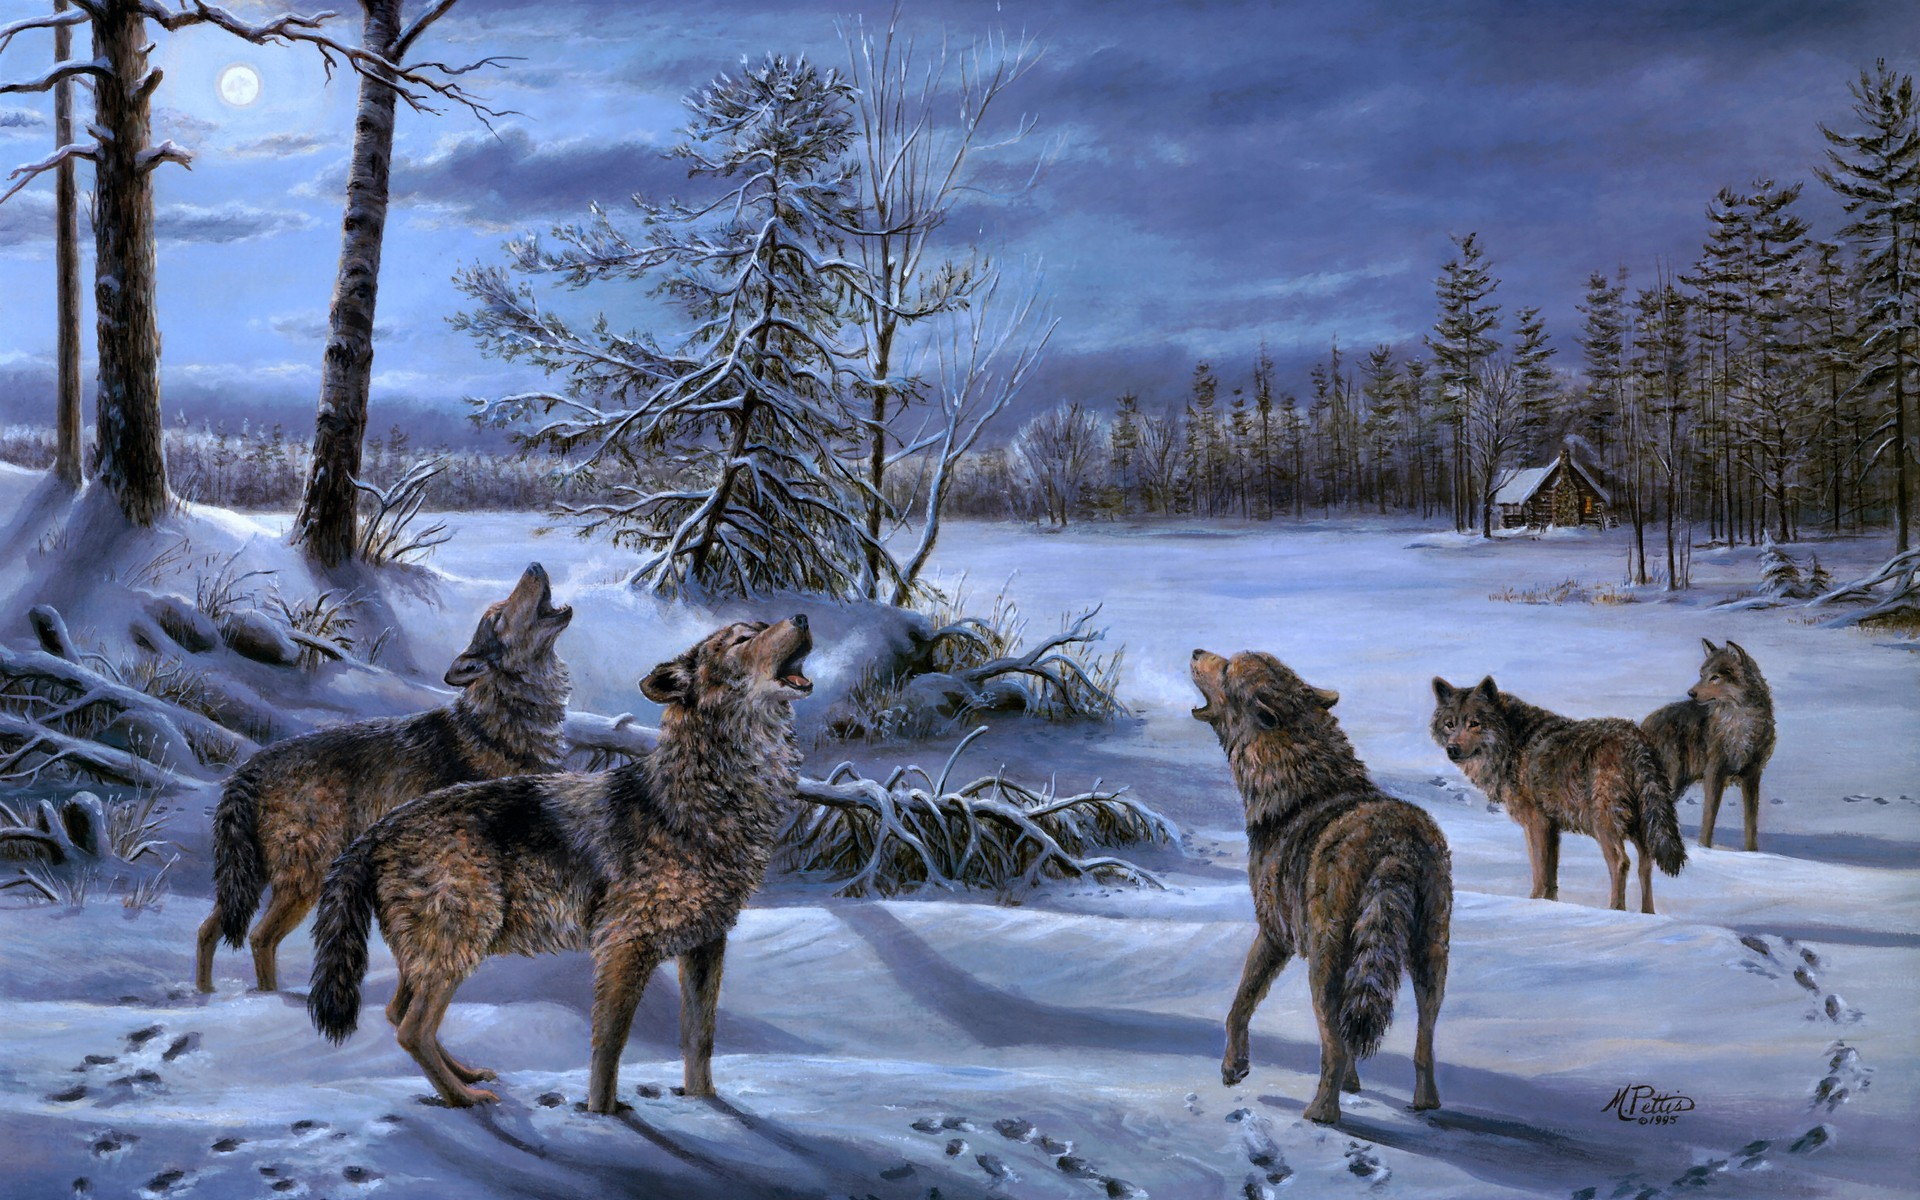 A pack of wolves howling at the moon